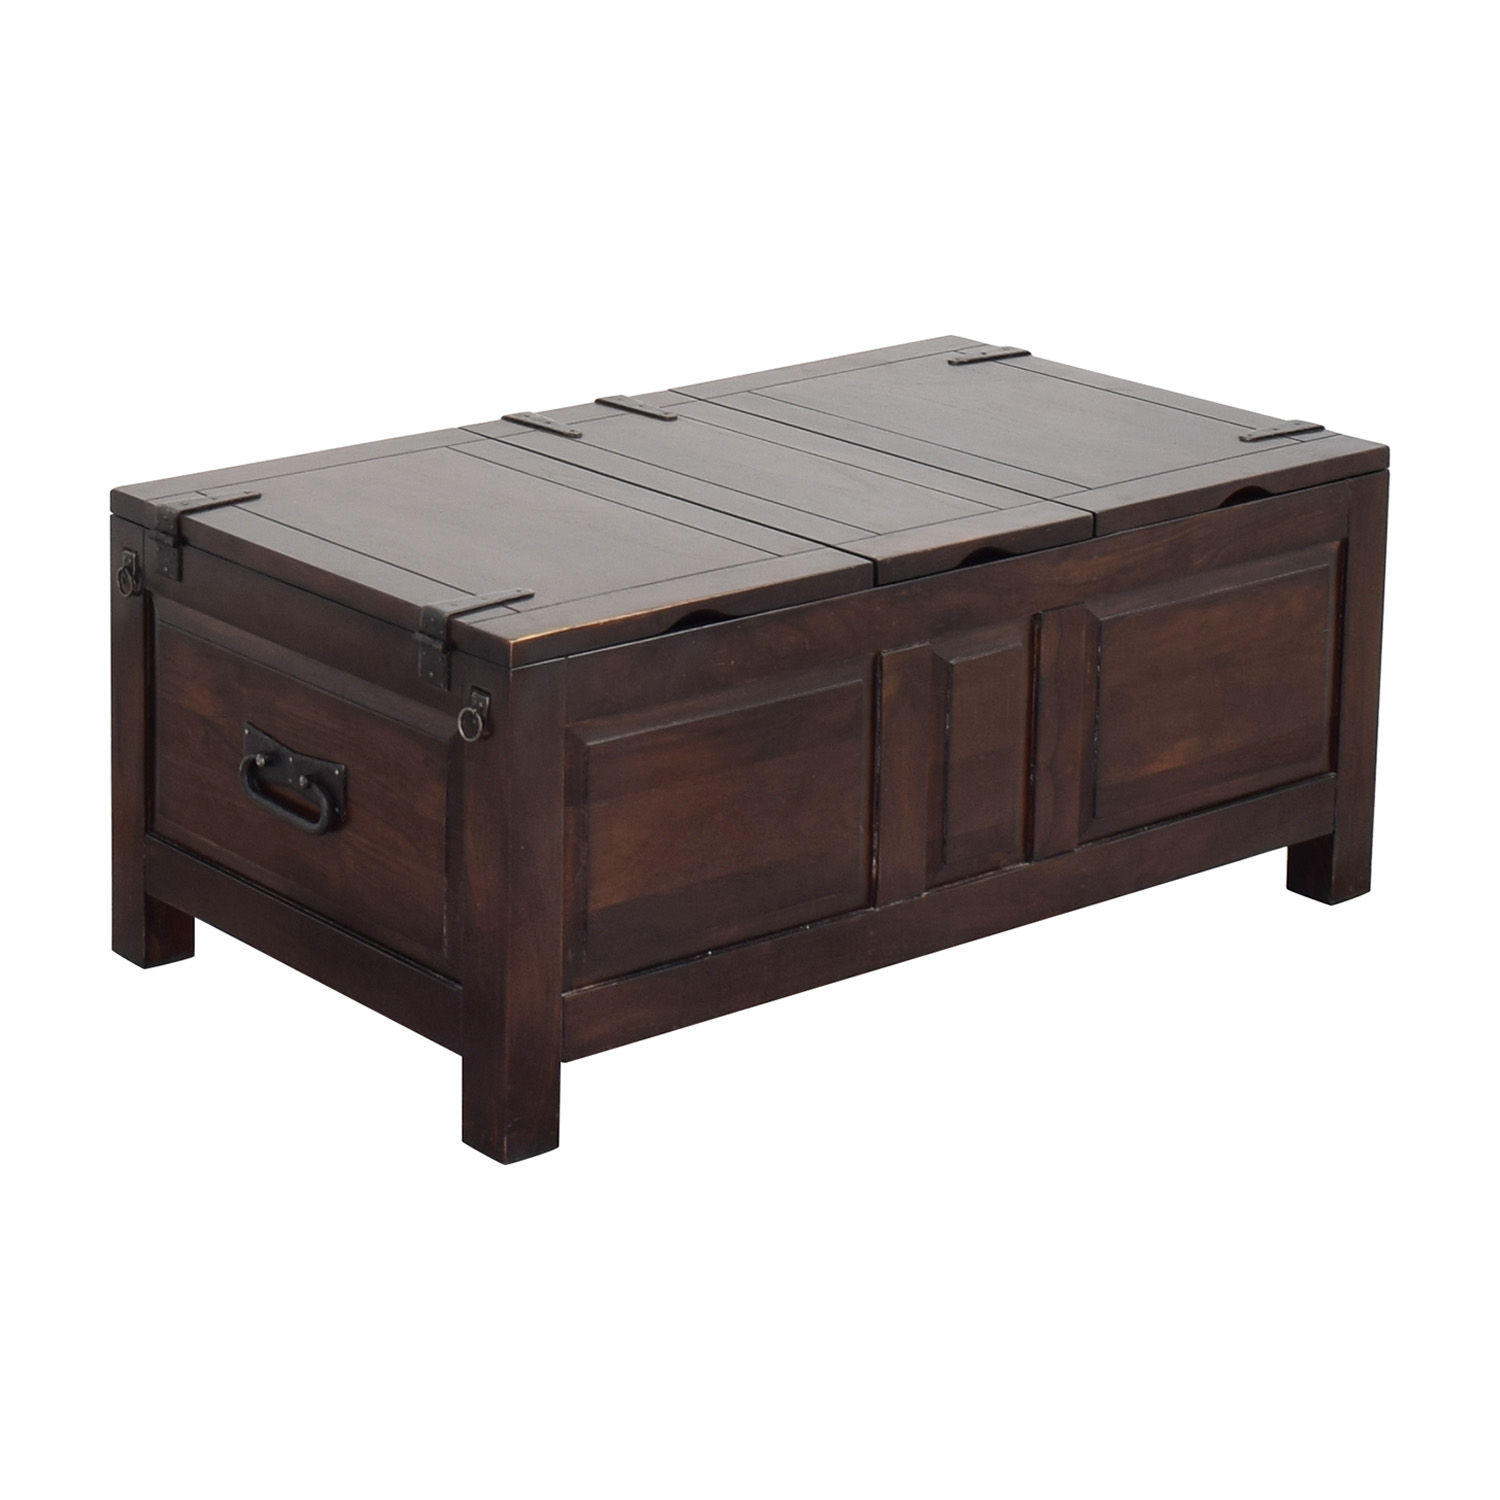 Phenomenal 26 Off Crate Barrel Crate Barrel Storage Coffee Table Trunk Tables Evergreenethics Interior Chair Design Evergreenethicsorg